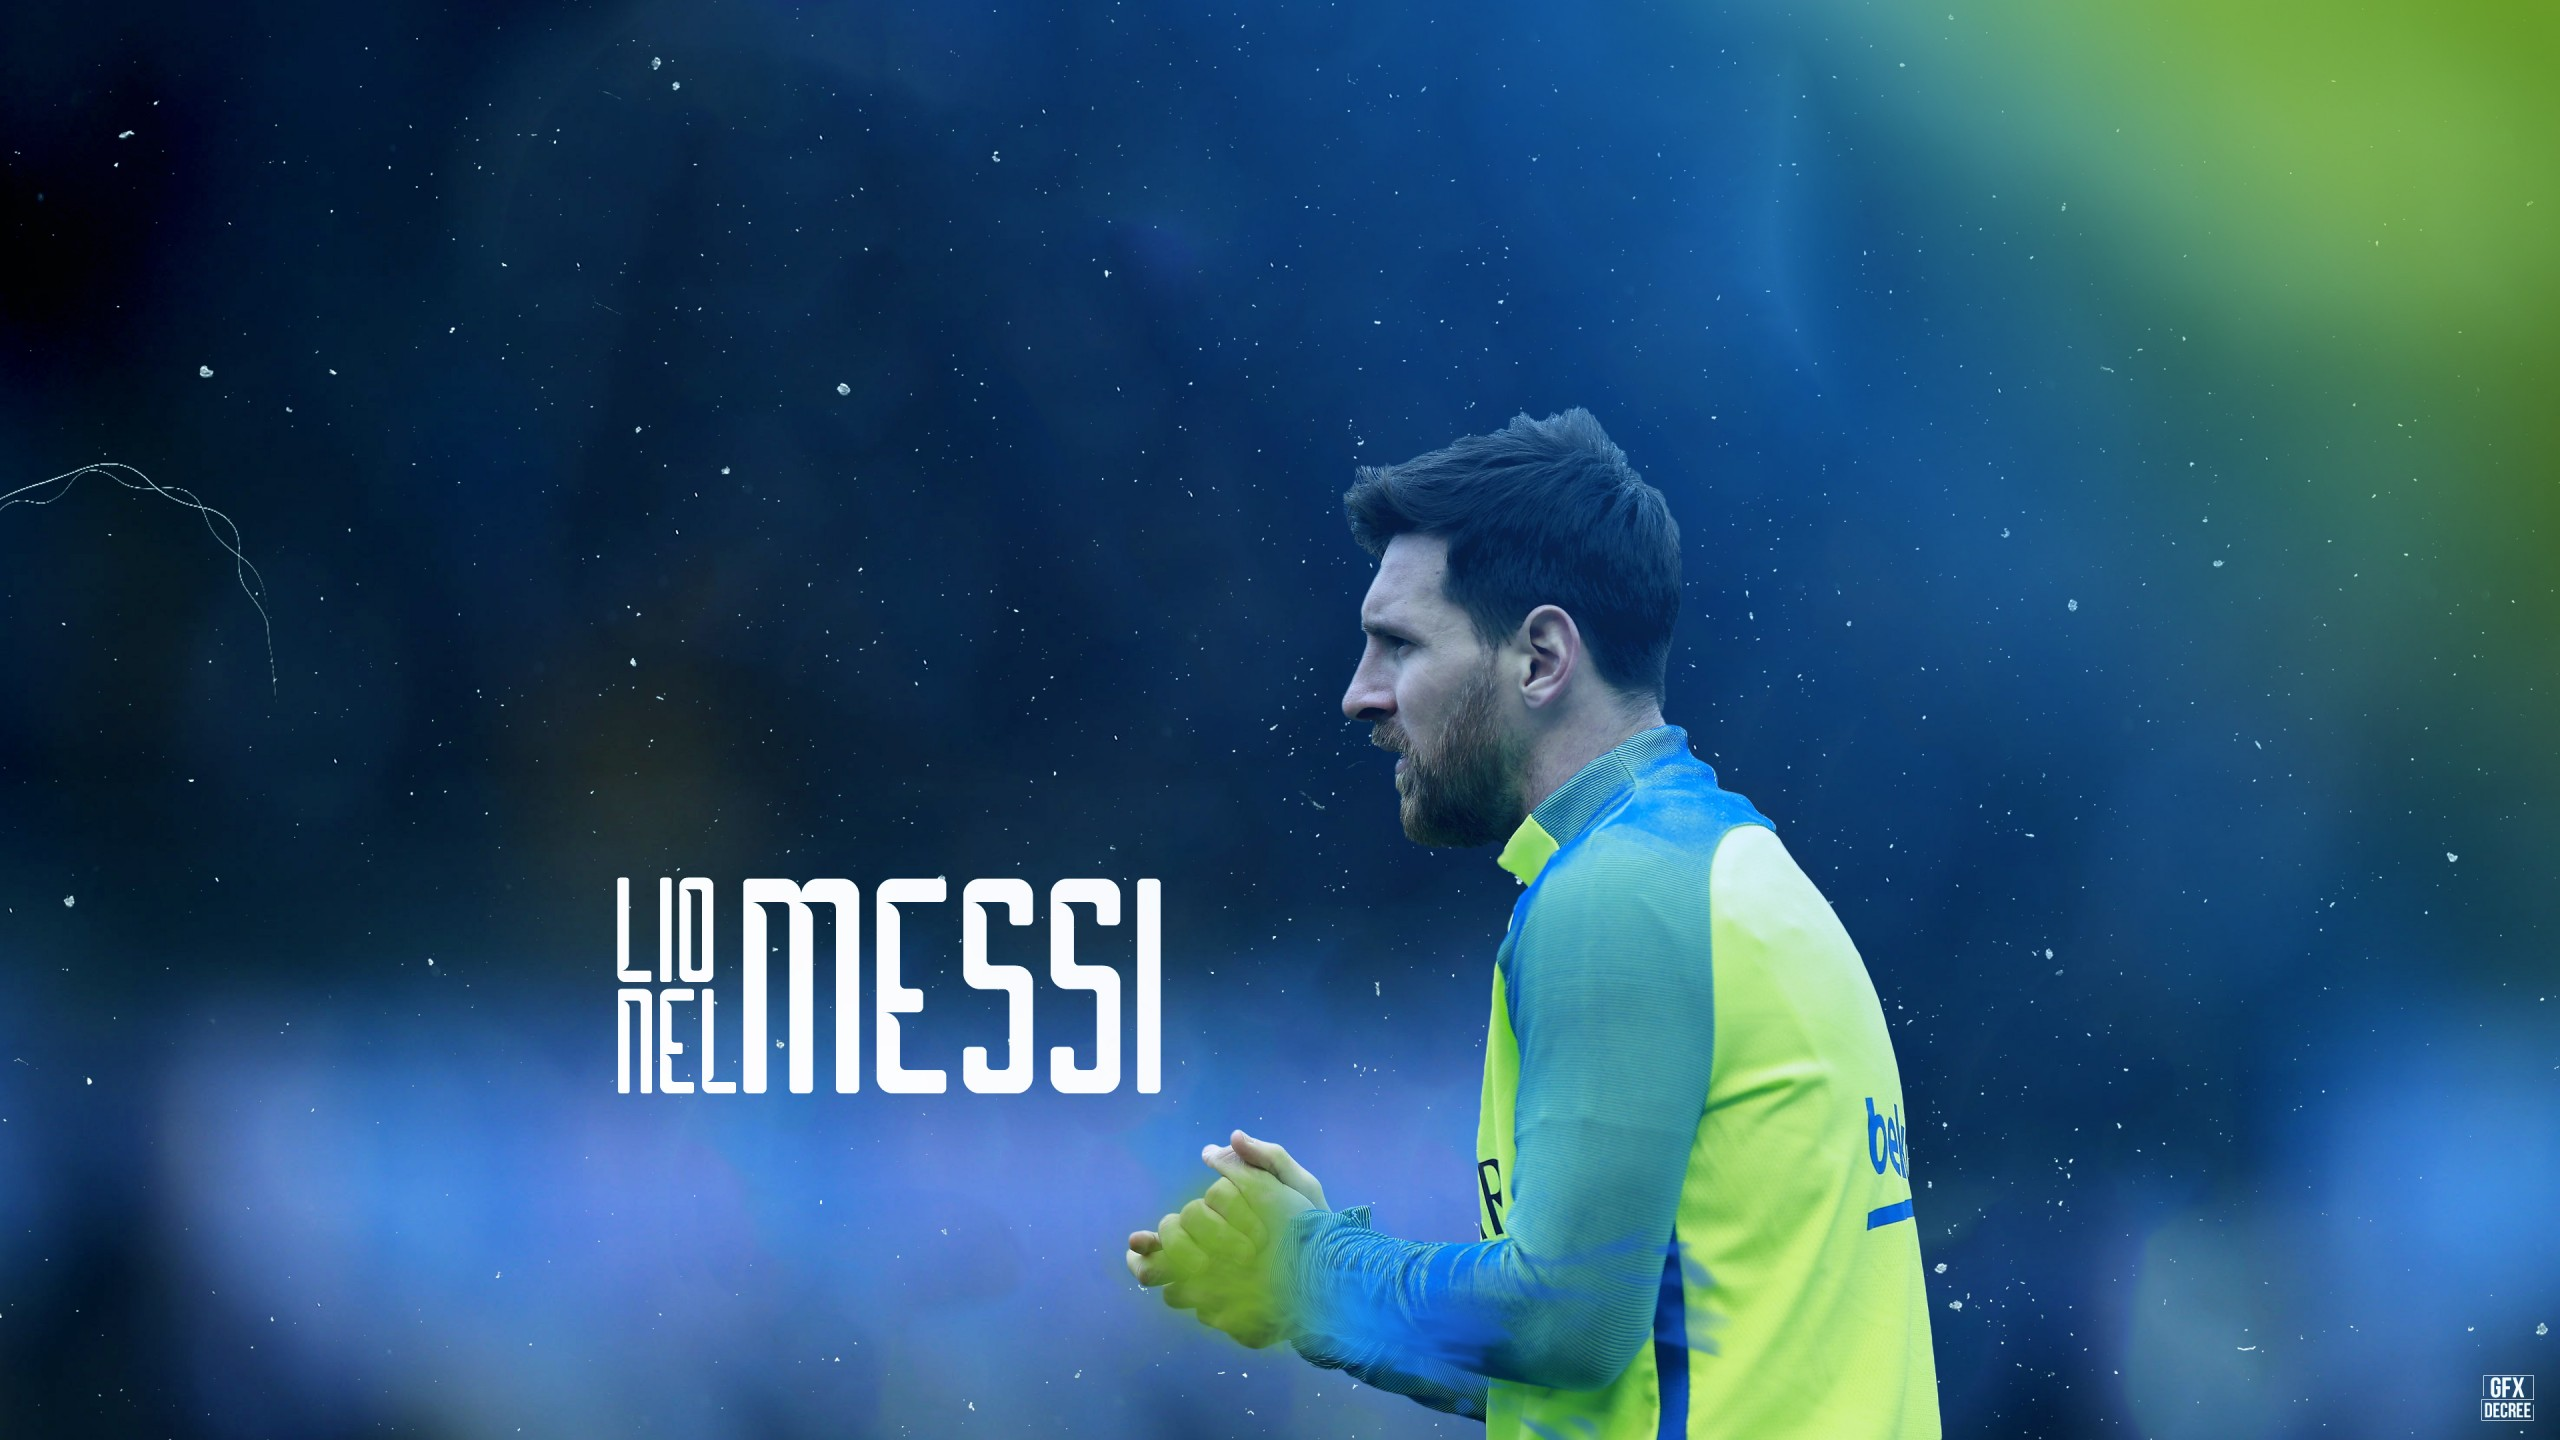 Iphone 6 Wallpaper Cars Lionel Messi 4k Hd Wallpapers Hd Wallpapers Id 21877